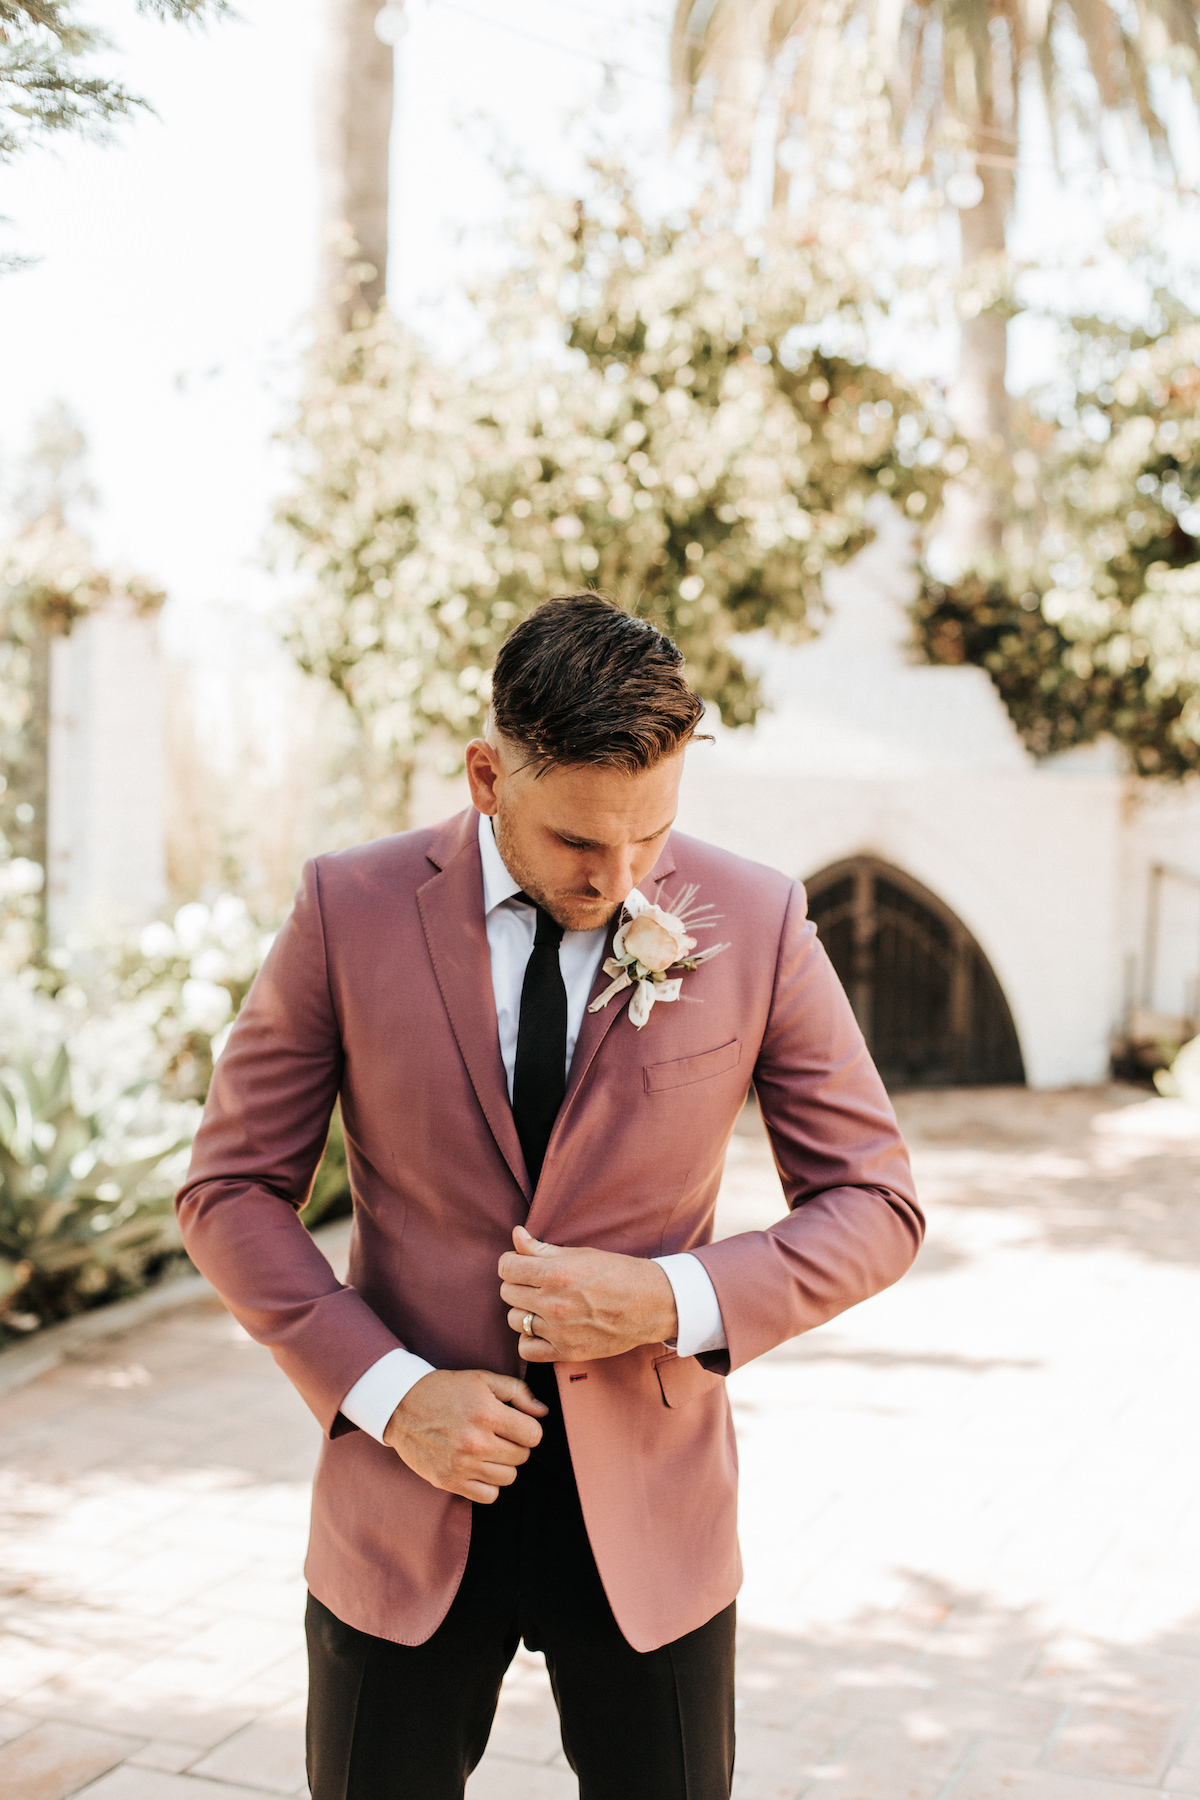 Groom style with pink suit jacket - Sydney Bliss Photography